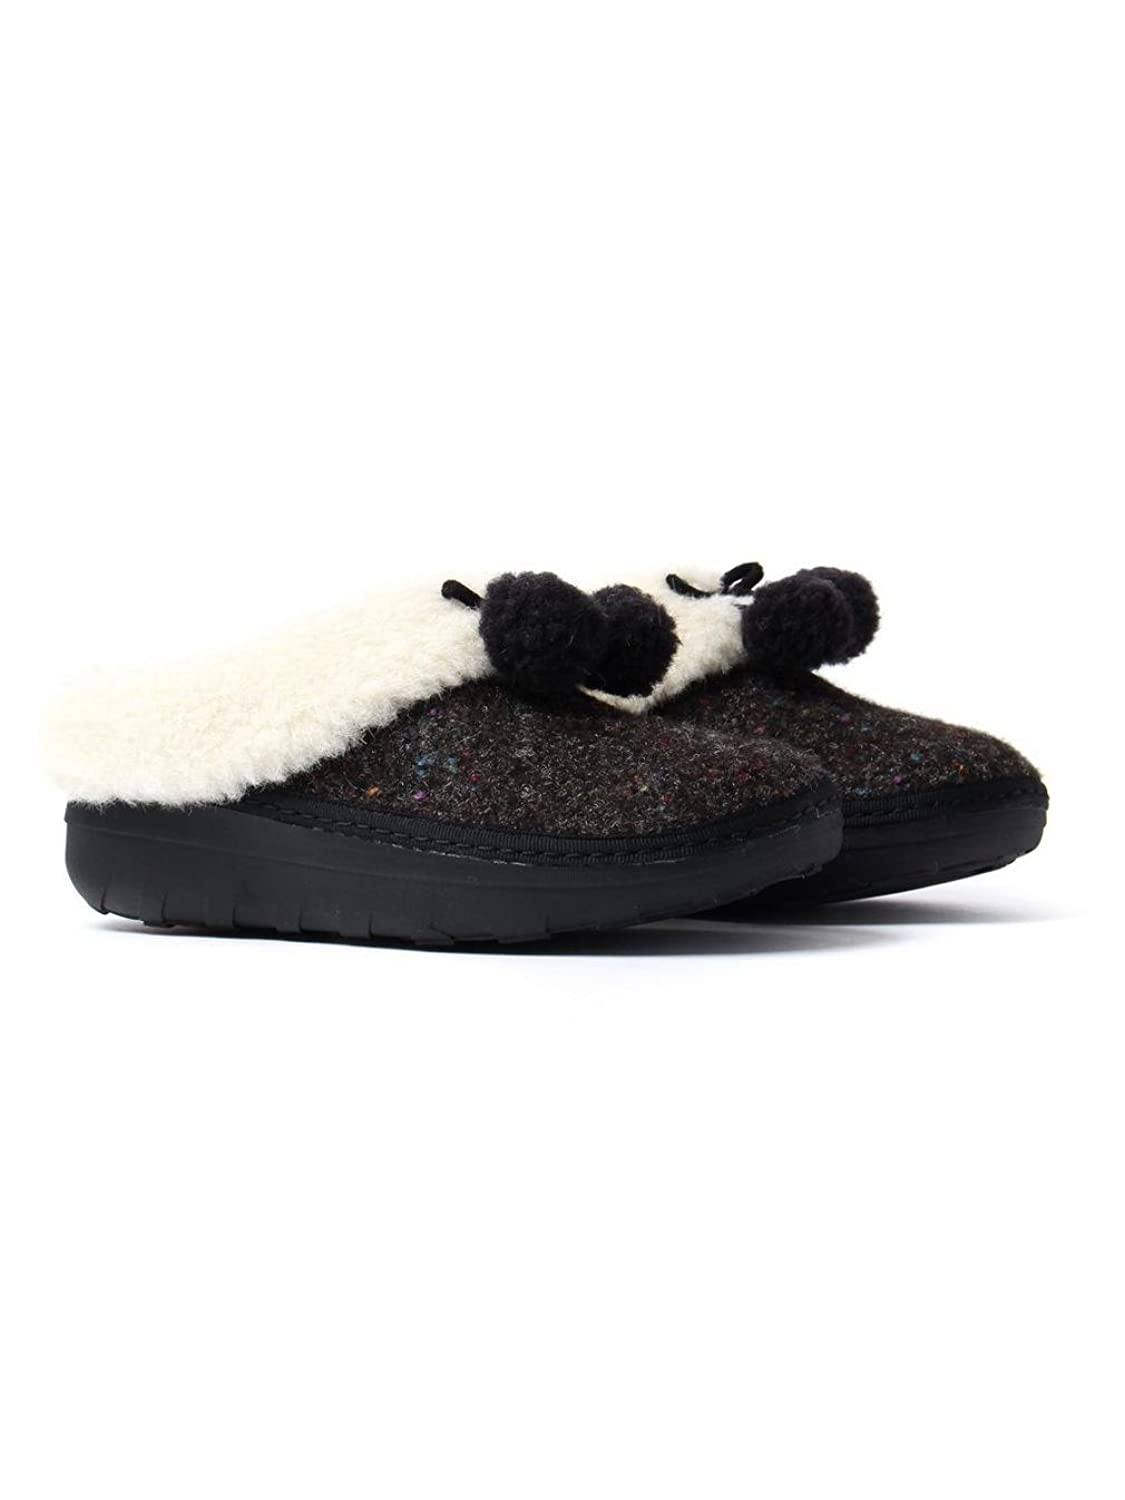 c615298e4b3afd Fitflop Women s The Cuddler Slippers  Amazon.co.uk  Shoes   Bags